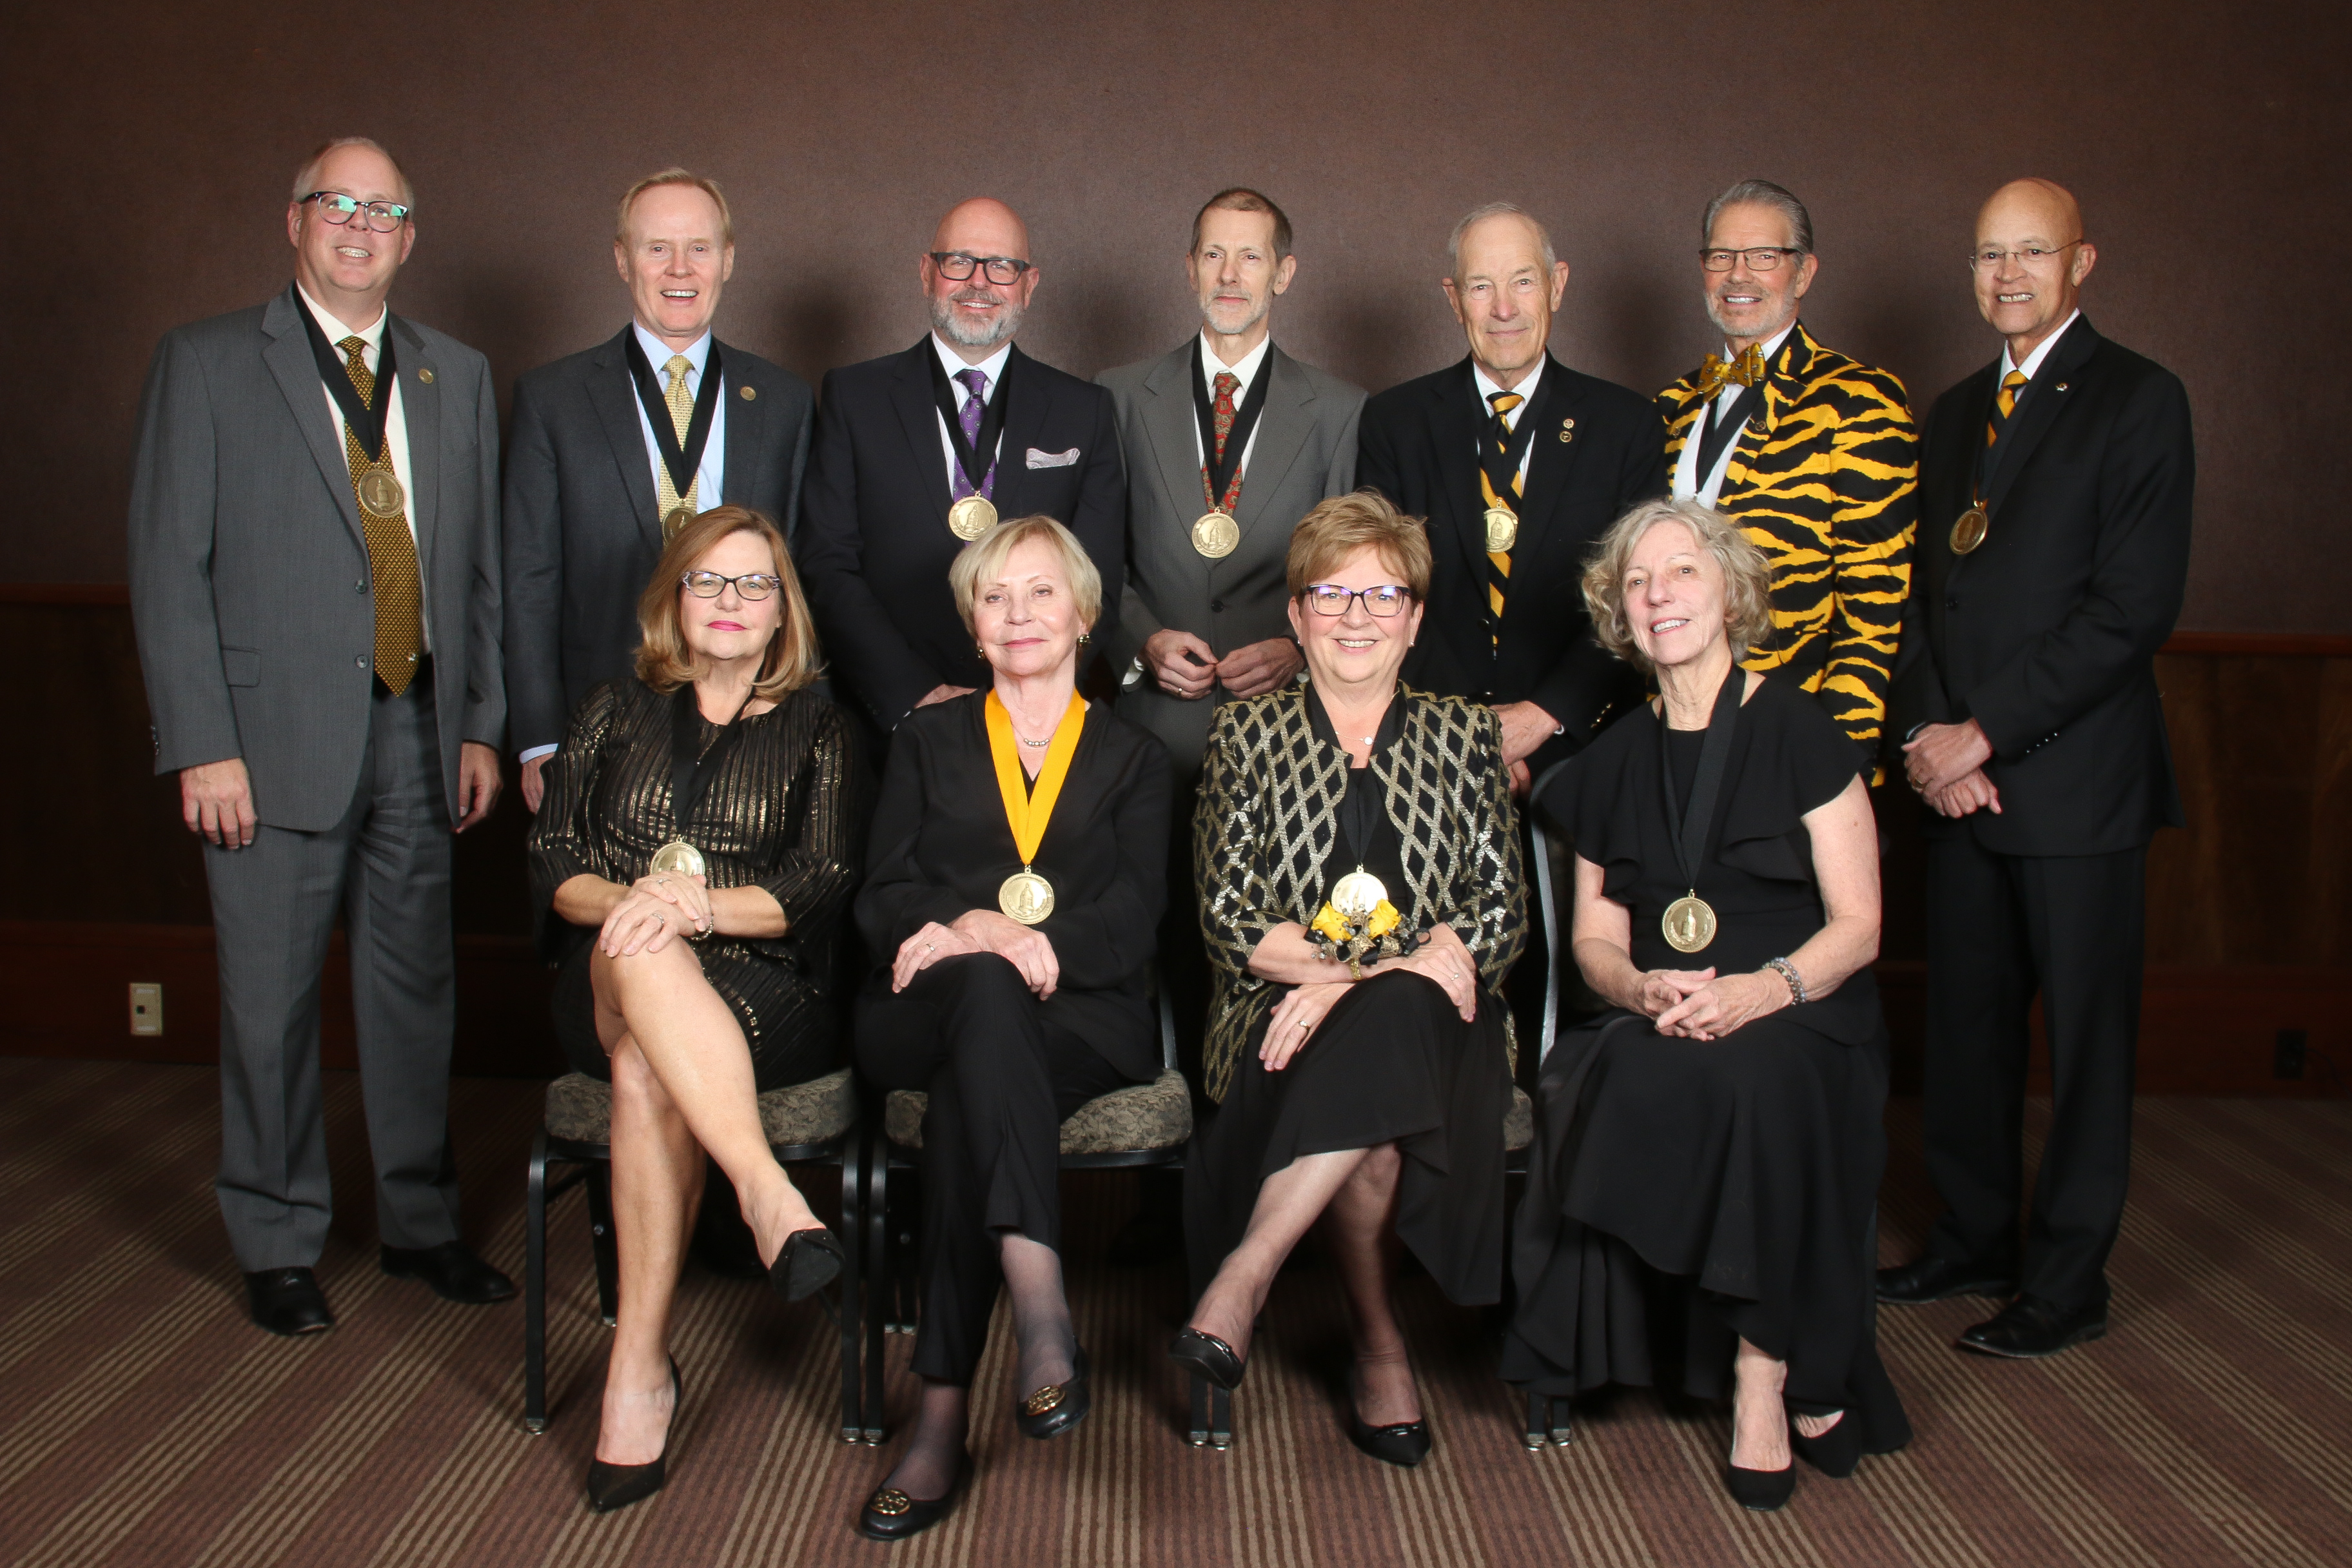 All of the Faculty-Alumni Award recipients